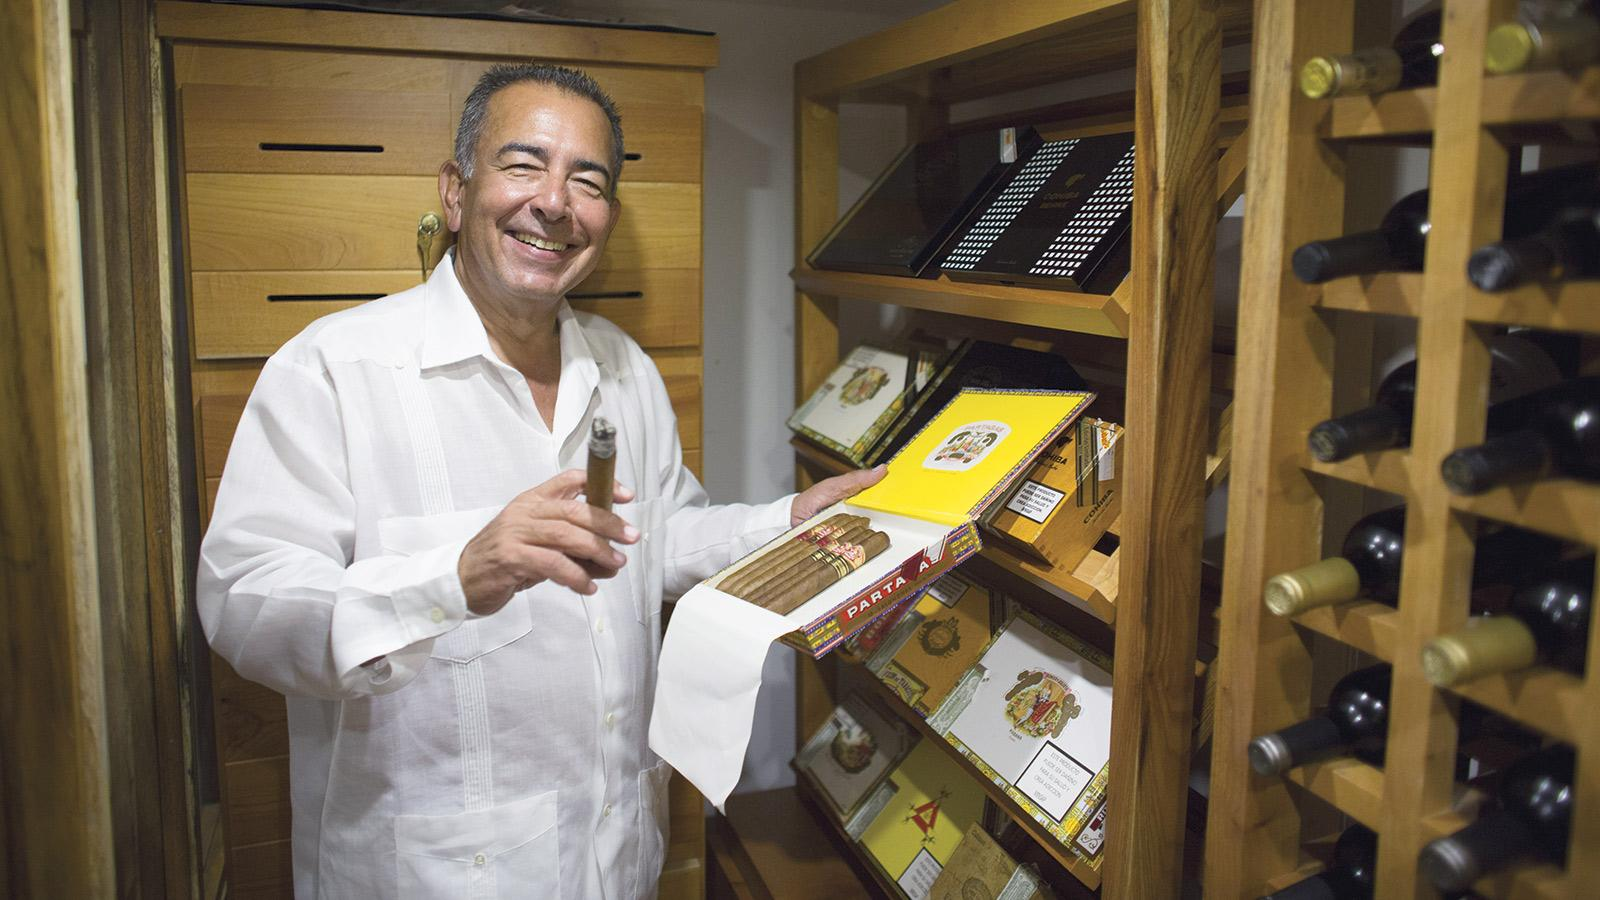 Abel Expósito Diaz spent 16 years running the Casa del Habano at the Partagás Cigar Factory. Today he manages a smaller cigar selection at Casa Abel.